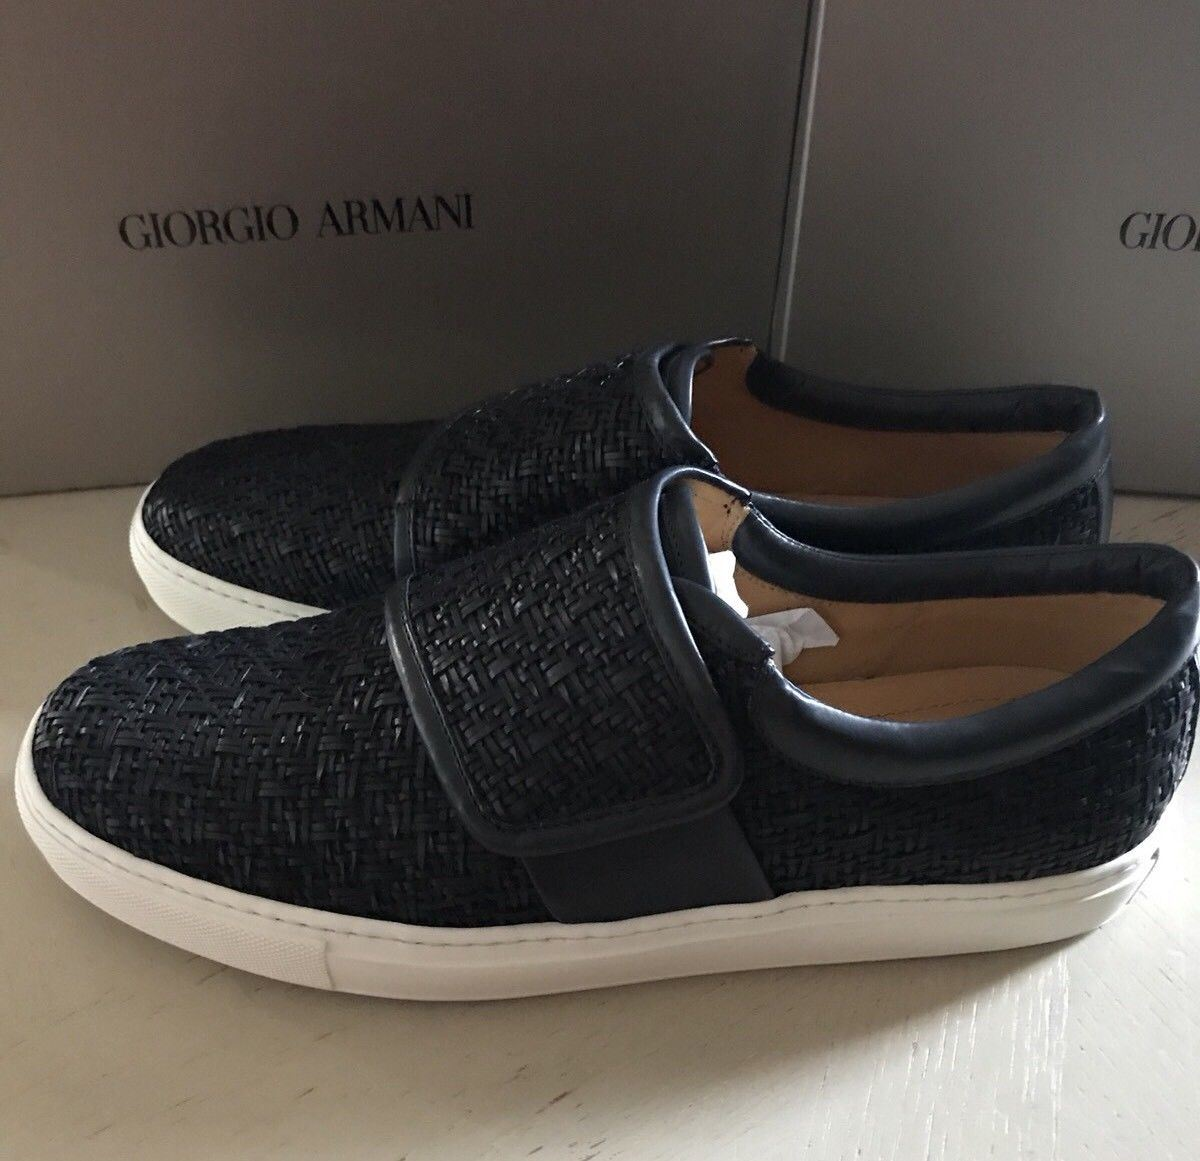 New $1475 Giorgio Armani Mens Leather Sneakers Shoes Dark Blue 7 US 1J085 Italy